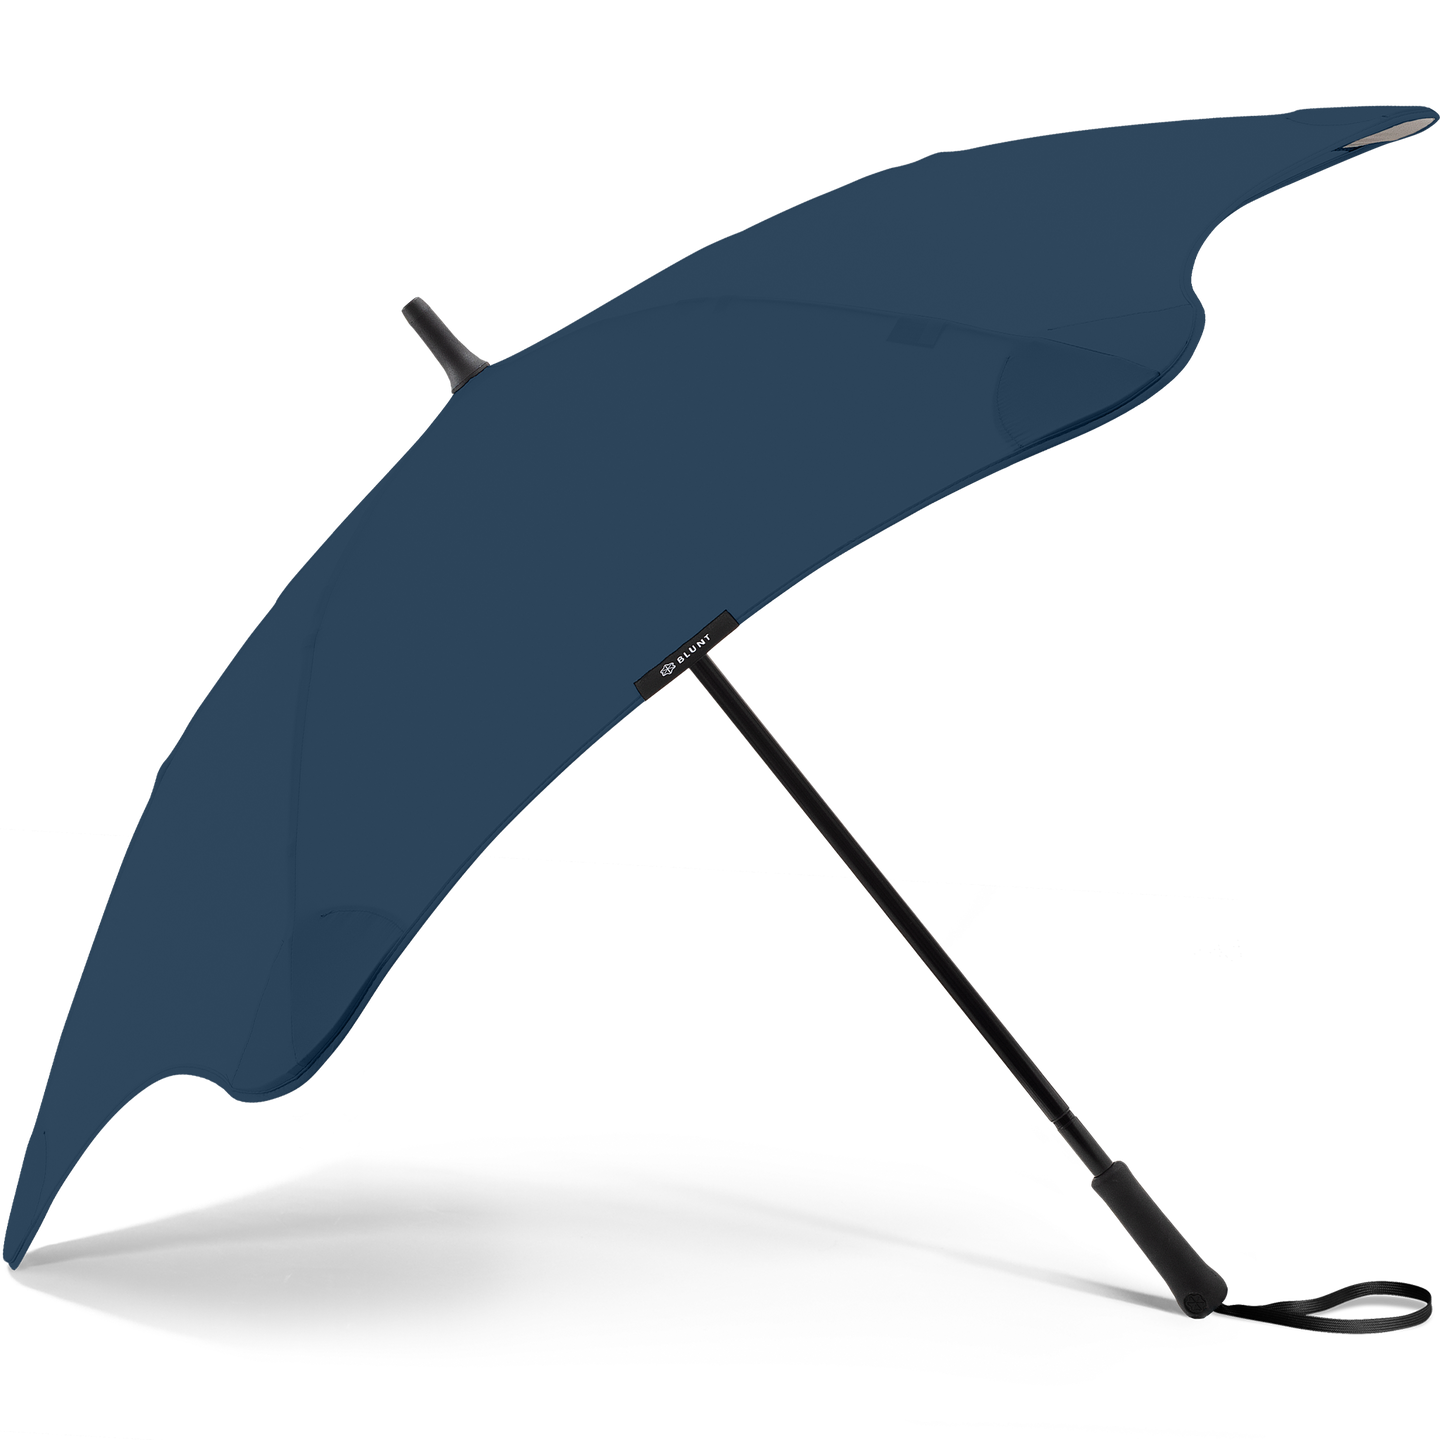 2020 Navy Coupe Blunt Umbrella Side View